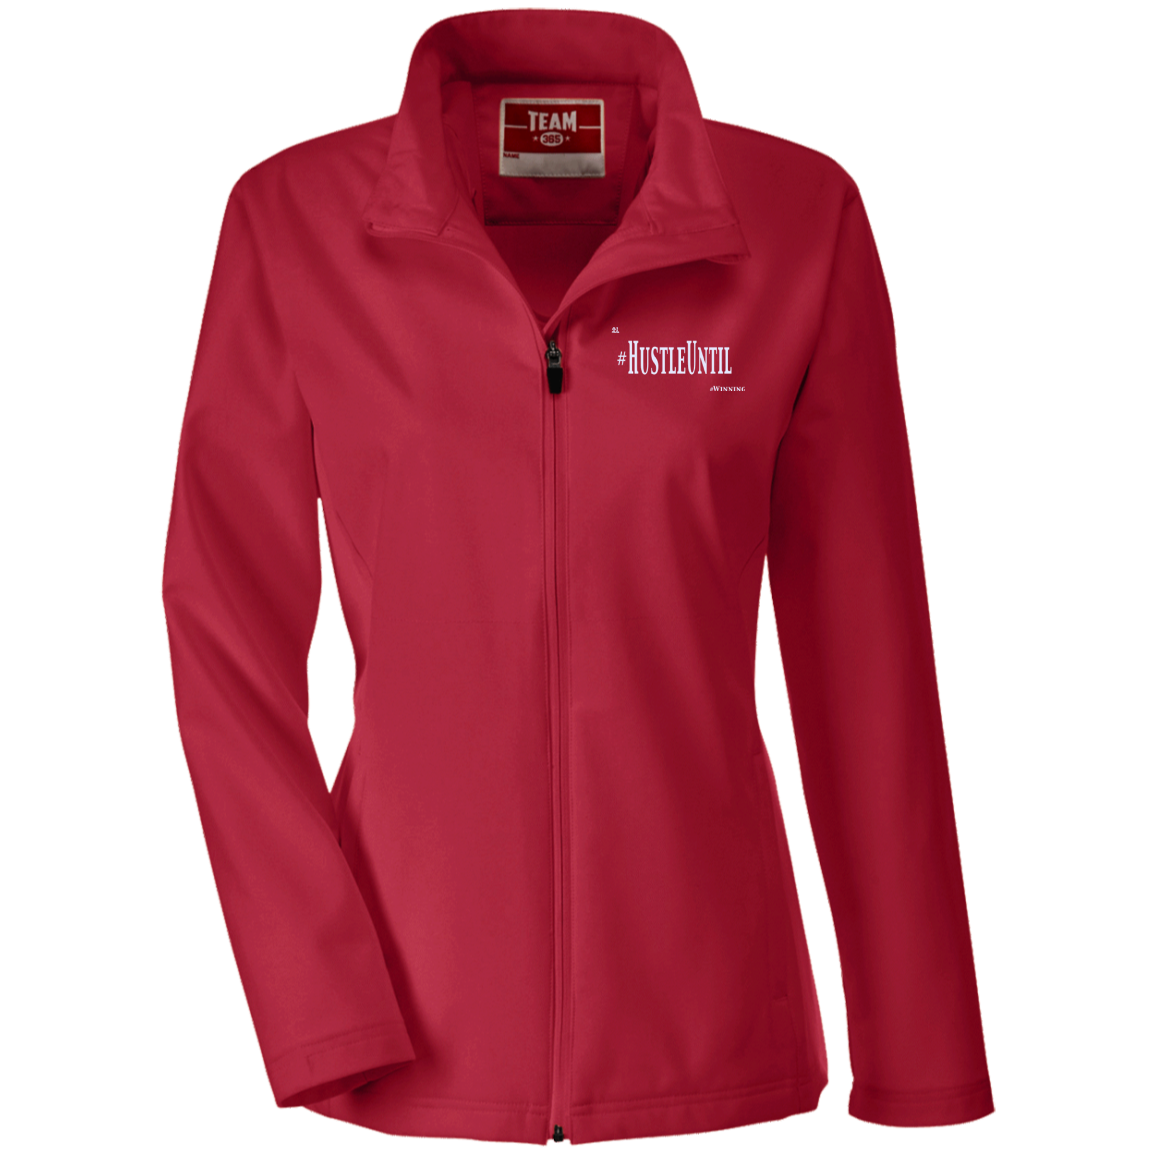 Hustle Until - Team 365 Ladies' Soft Shell Jacket